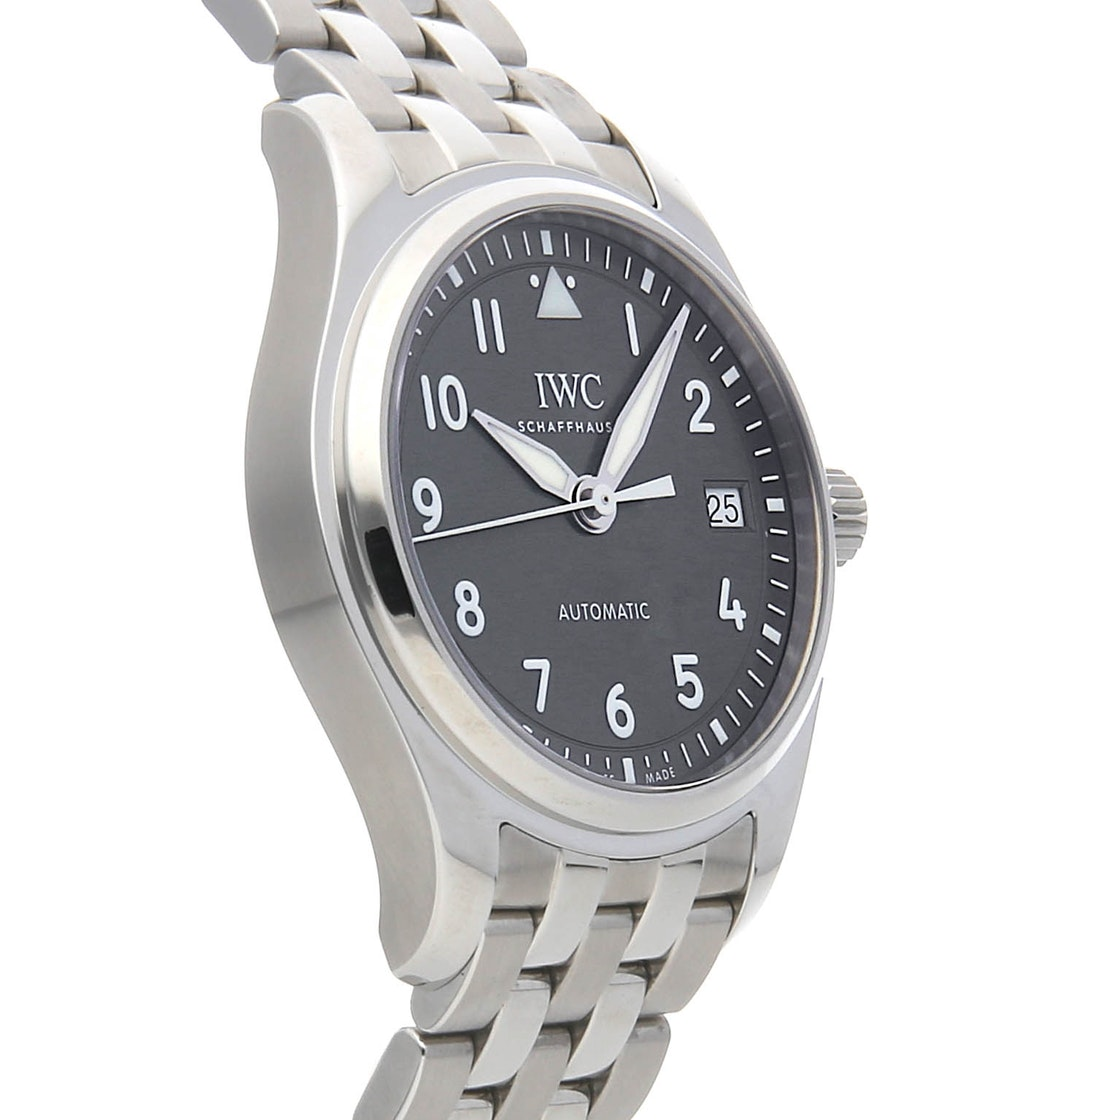 IWC Pilot's Watch IW3240-02